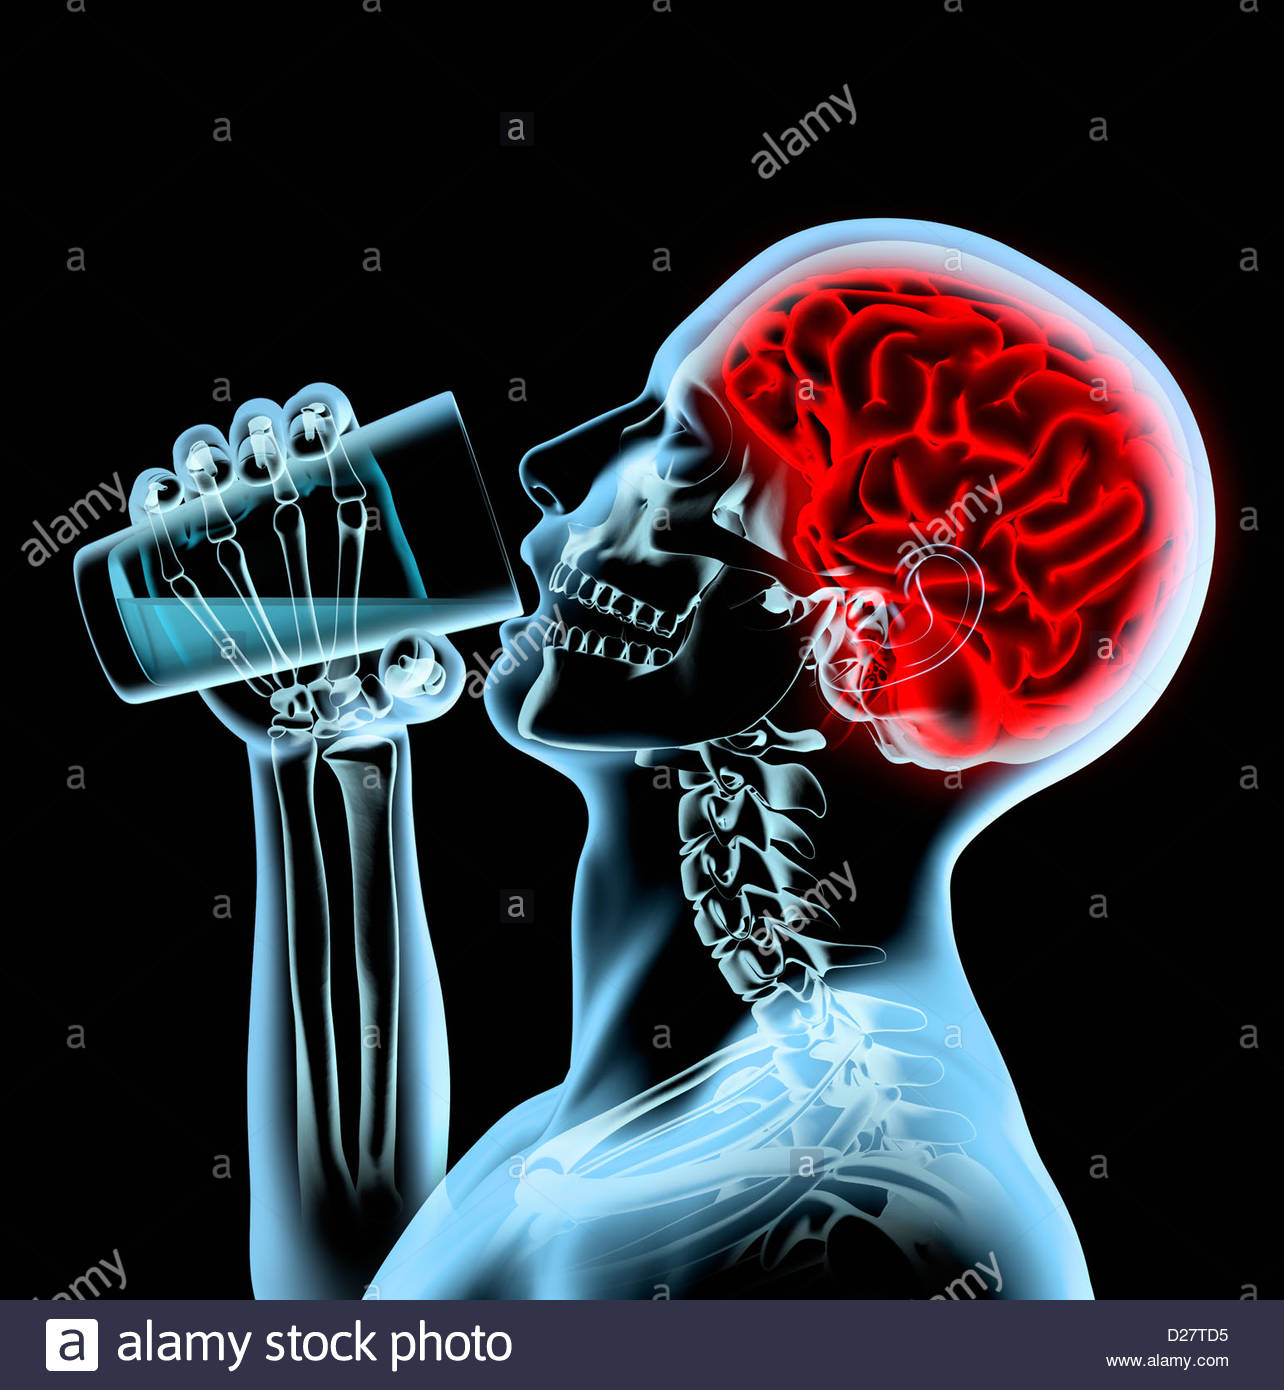 X-ray of man with red brain drinking from glass - Stock Image